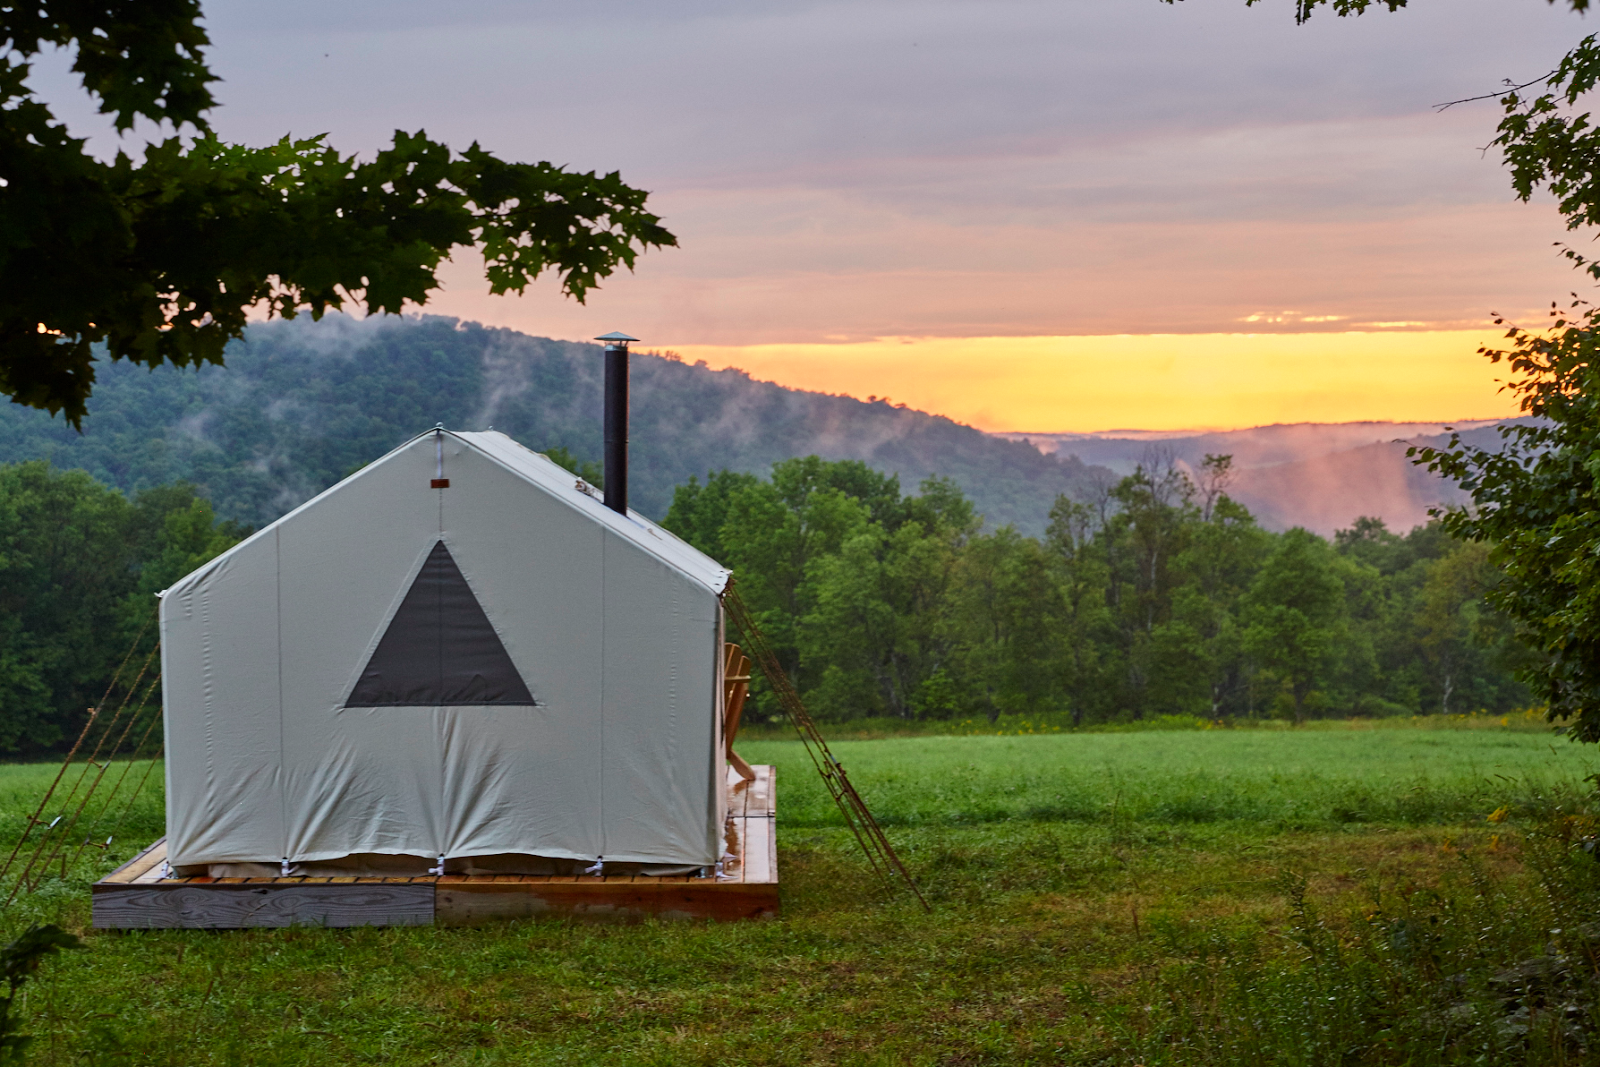 Ways to Make Camp Cleanup Easier